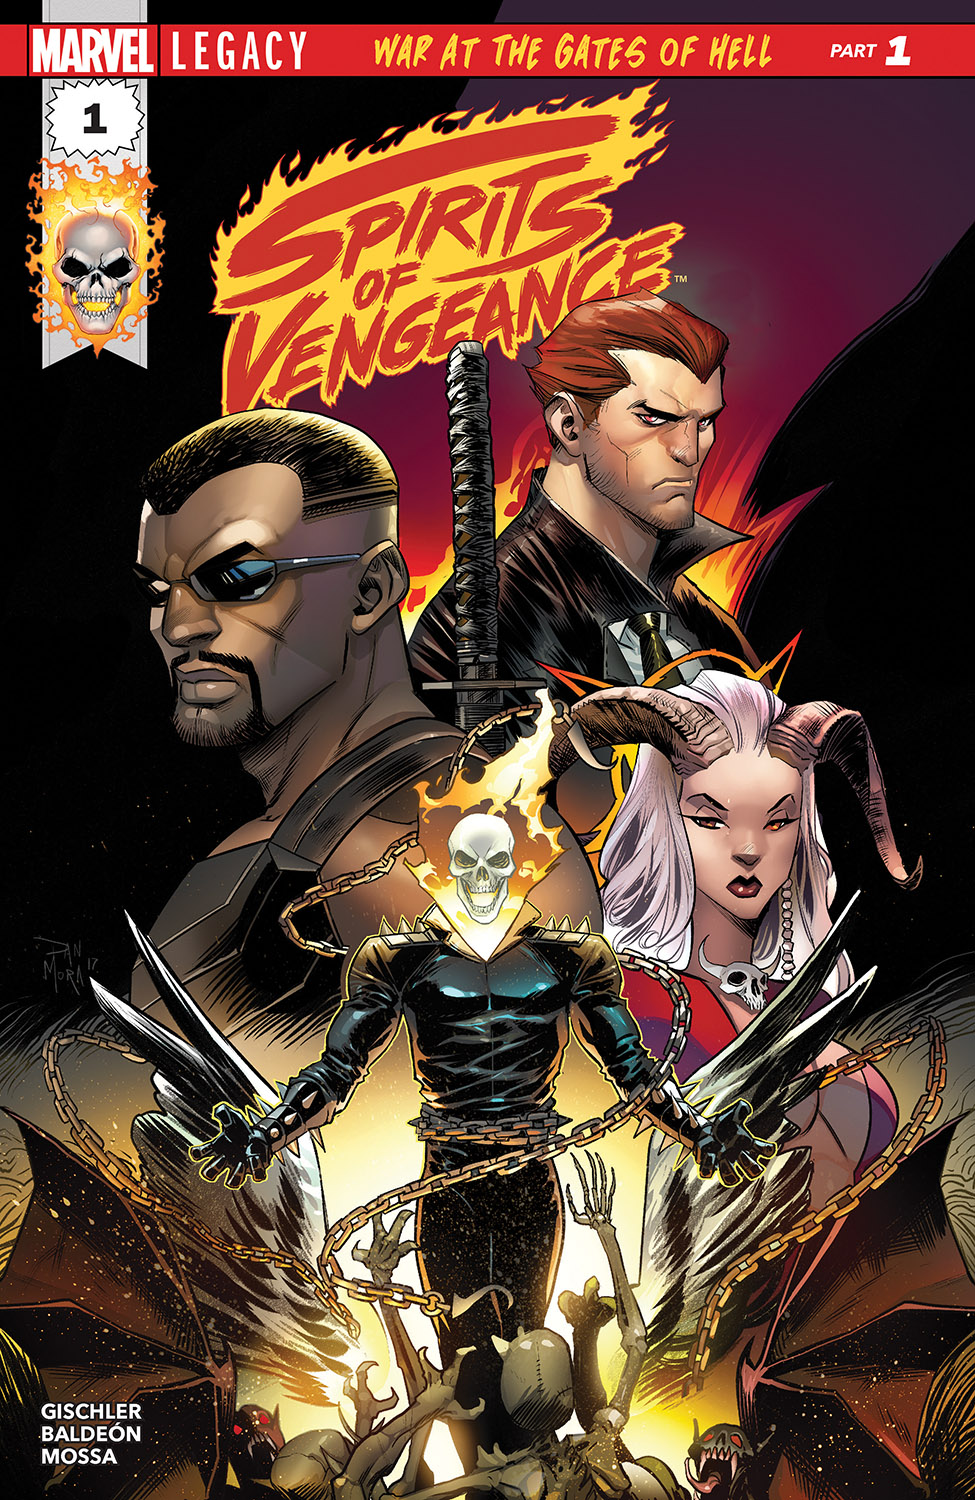 Spirits of Vengeance (2017) #1